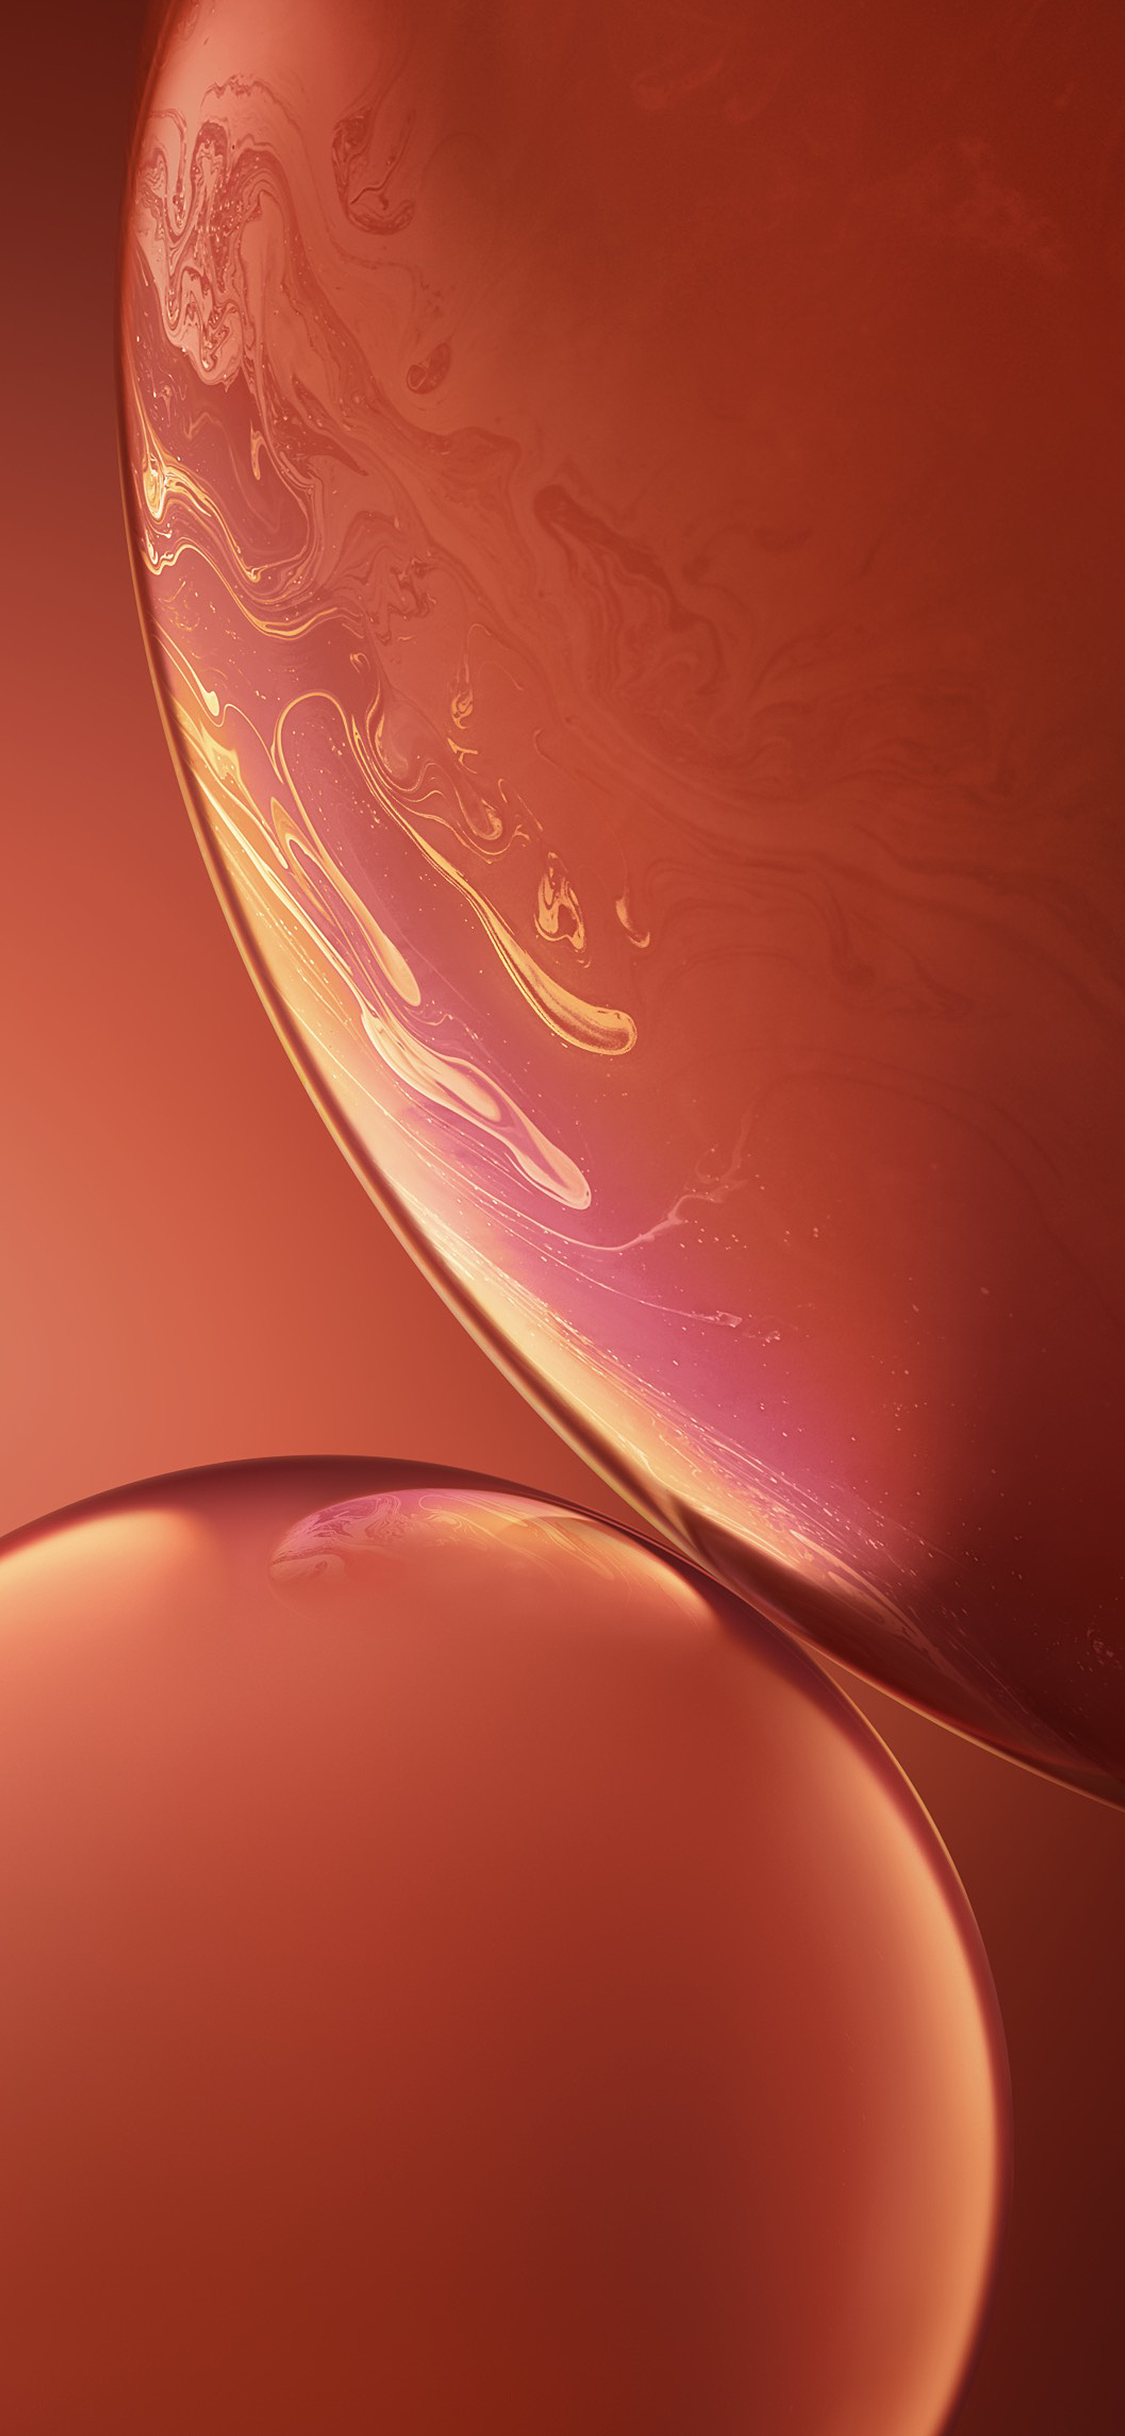 iOS 12 Wallpapers Wallpaper for iPhone 11, Pro Max, X, 8 ...